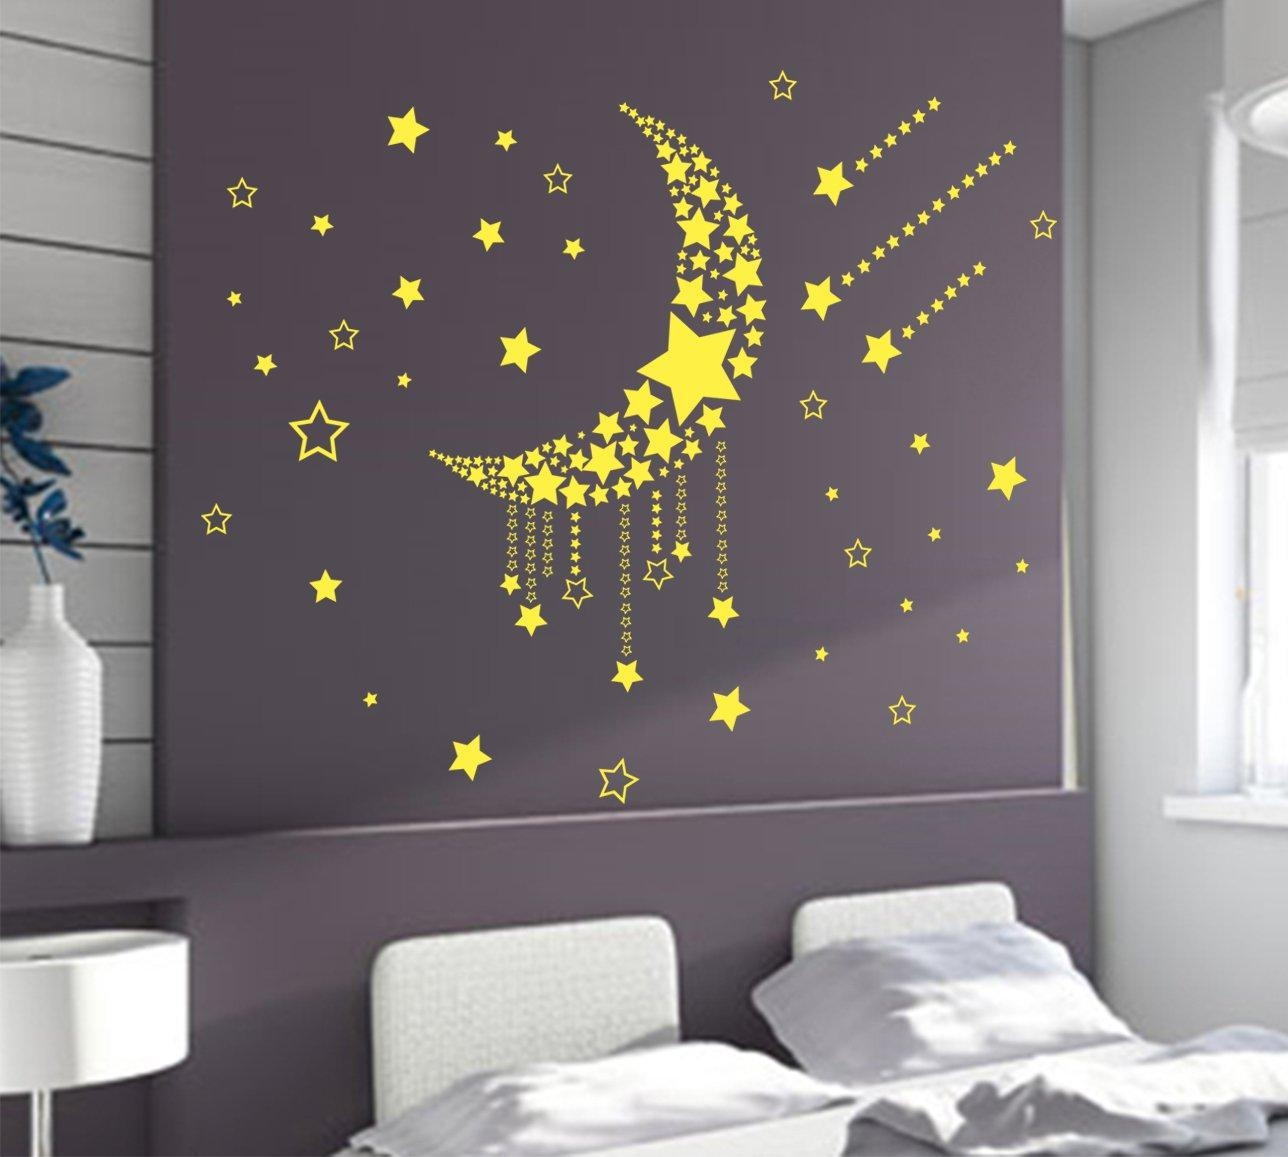 Large Moon Stars Wall Art Vinyl Stickers, Diy Bedroom Wall Decal Intended For Bedroom Wall Art (View 14 of 20)